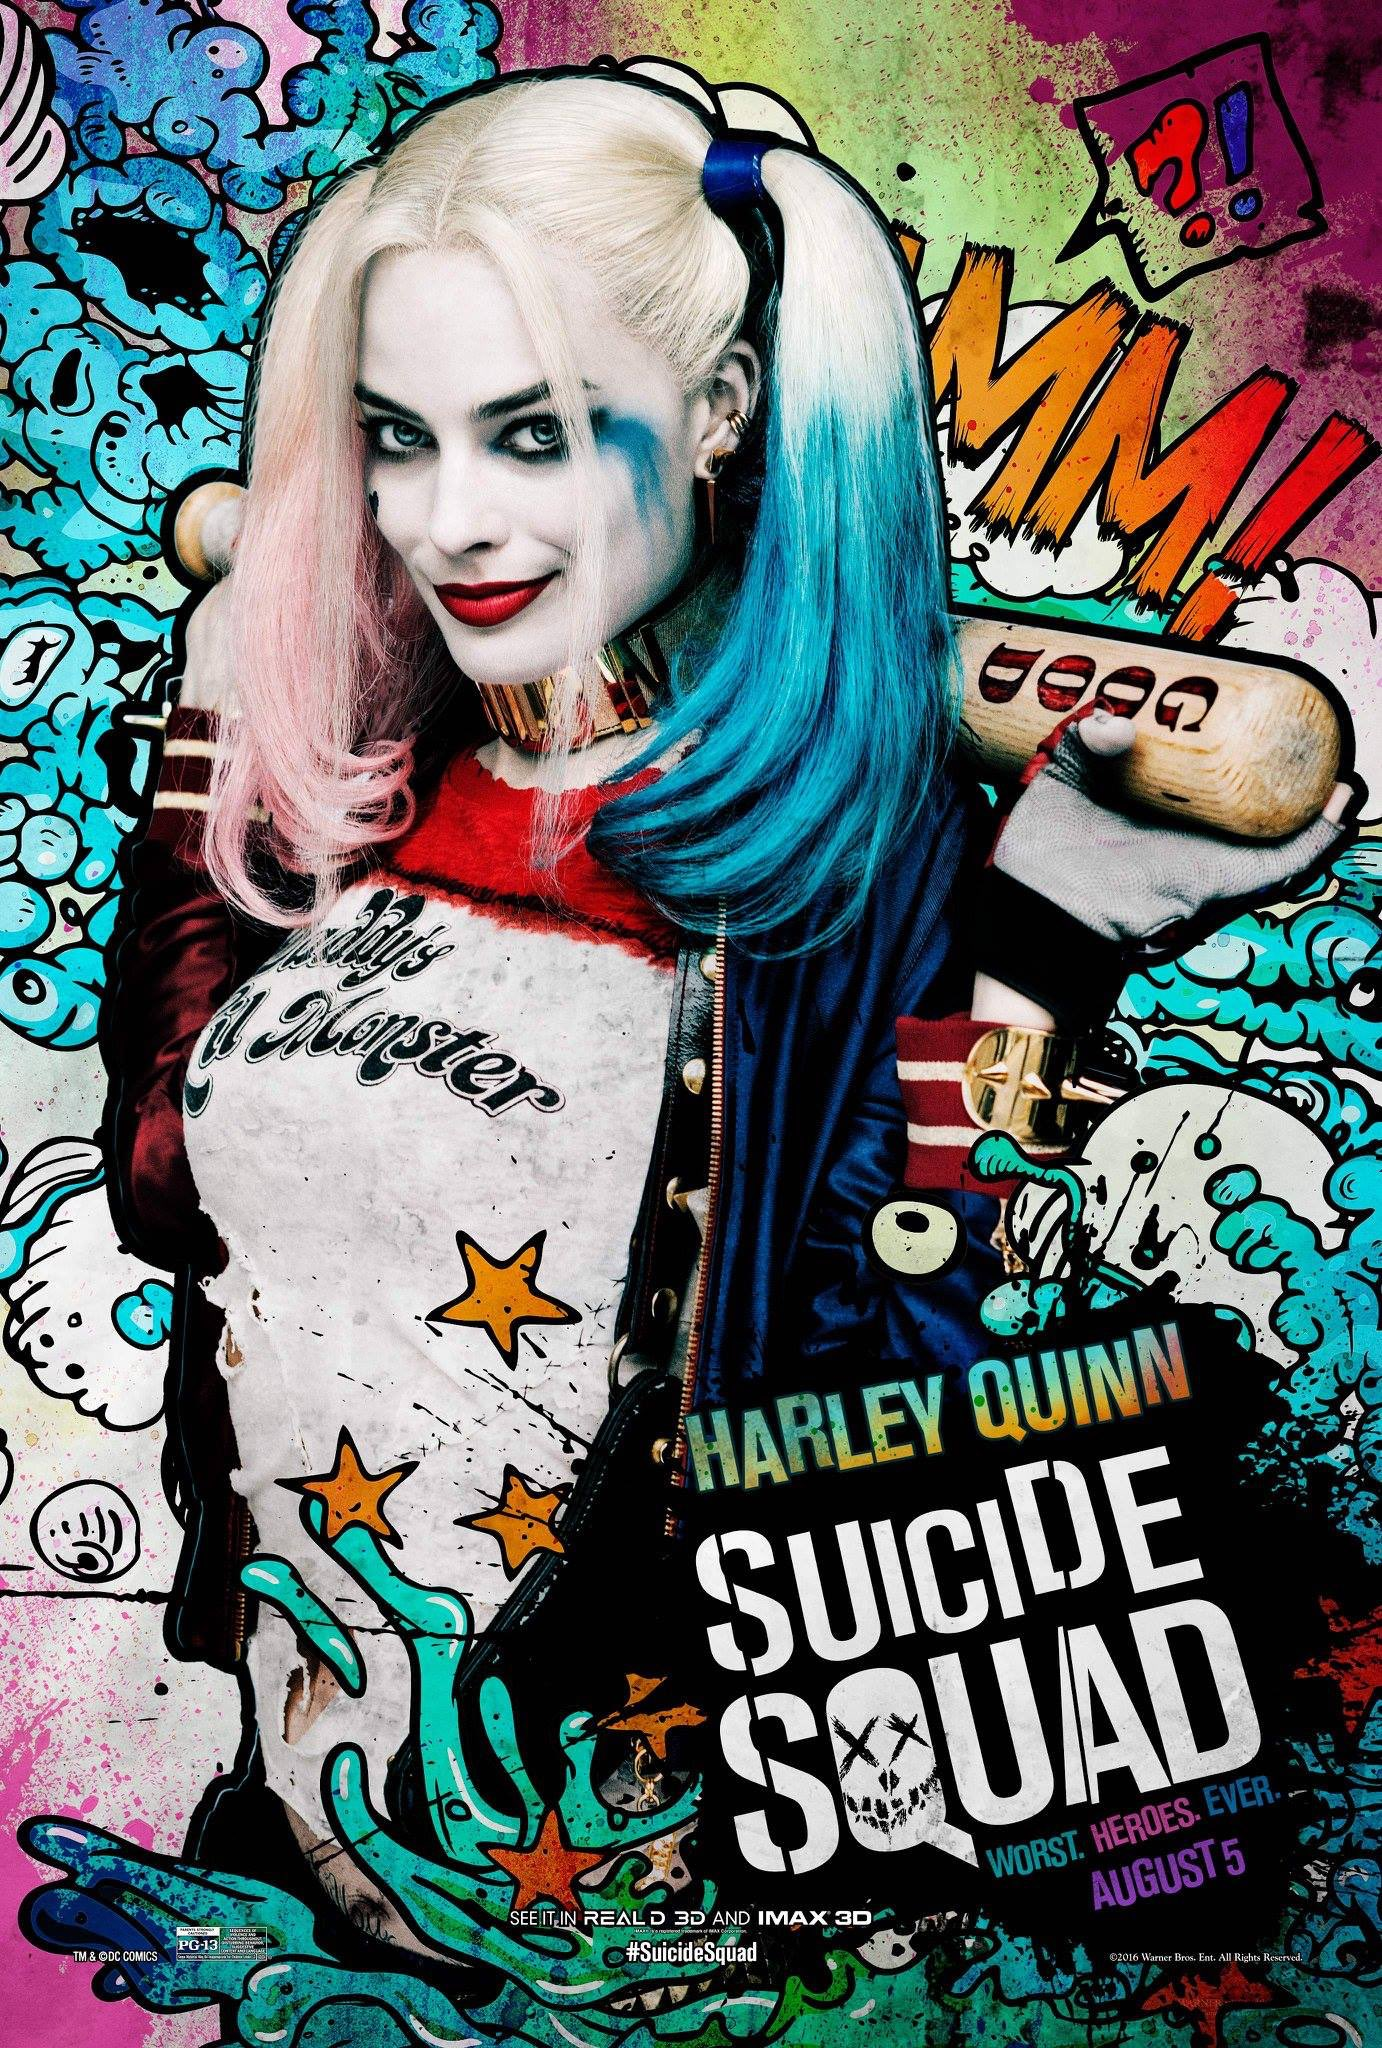 Anyone seen suicide squad yet? Critics an't been very kind but I'm sure I'll fink its RAD! https://t.co/BHMt1tzktX